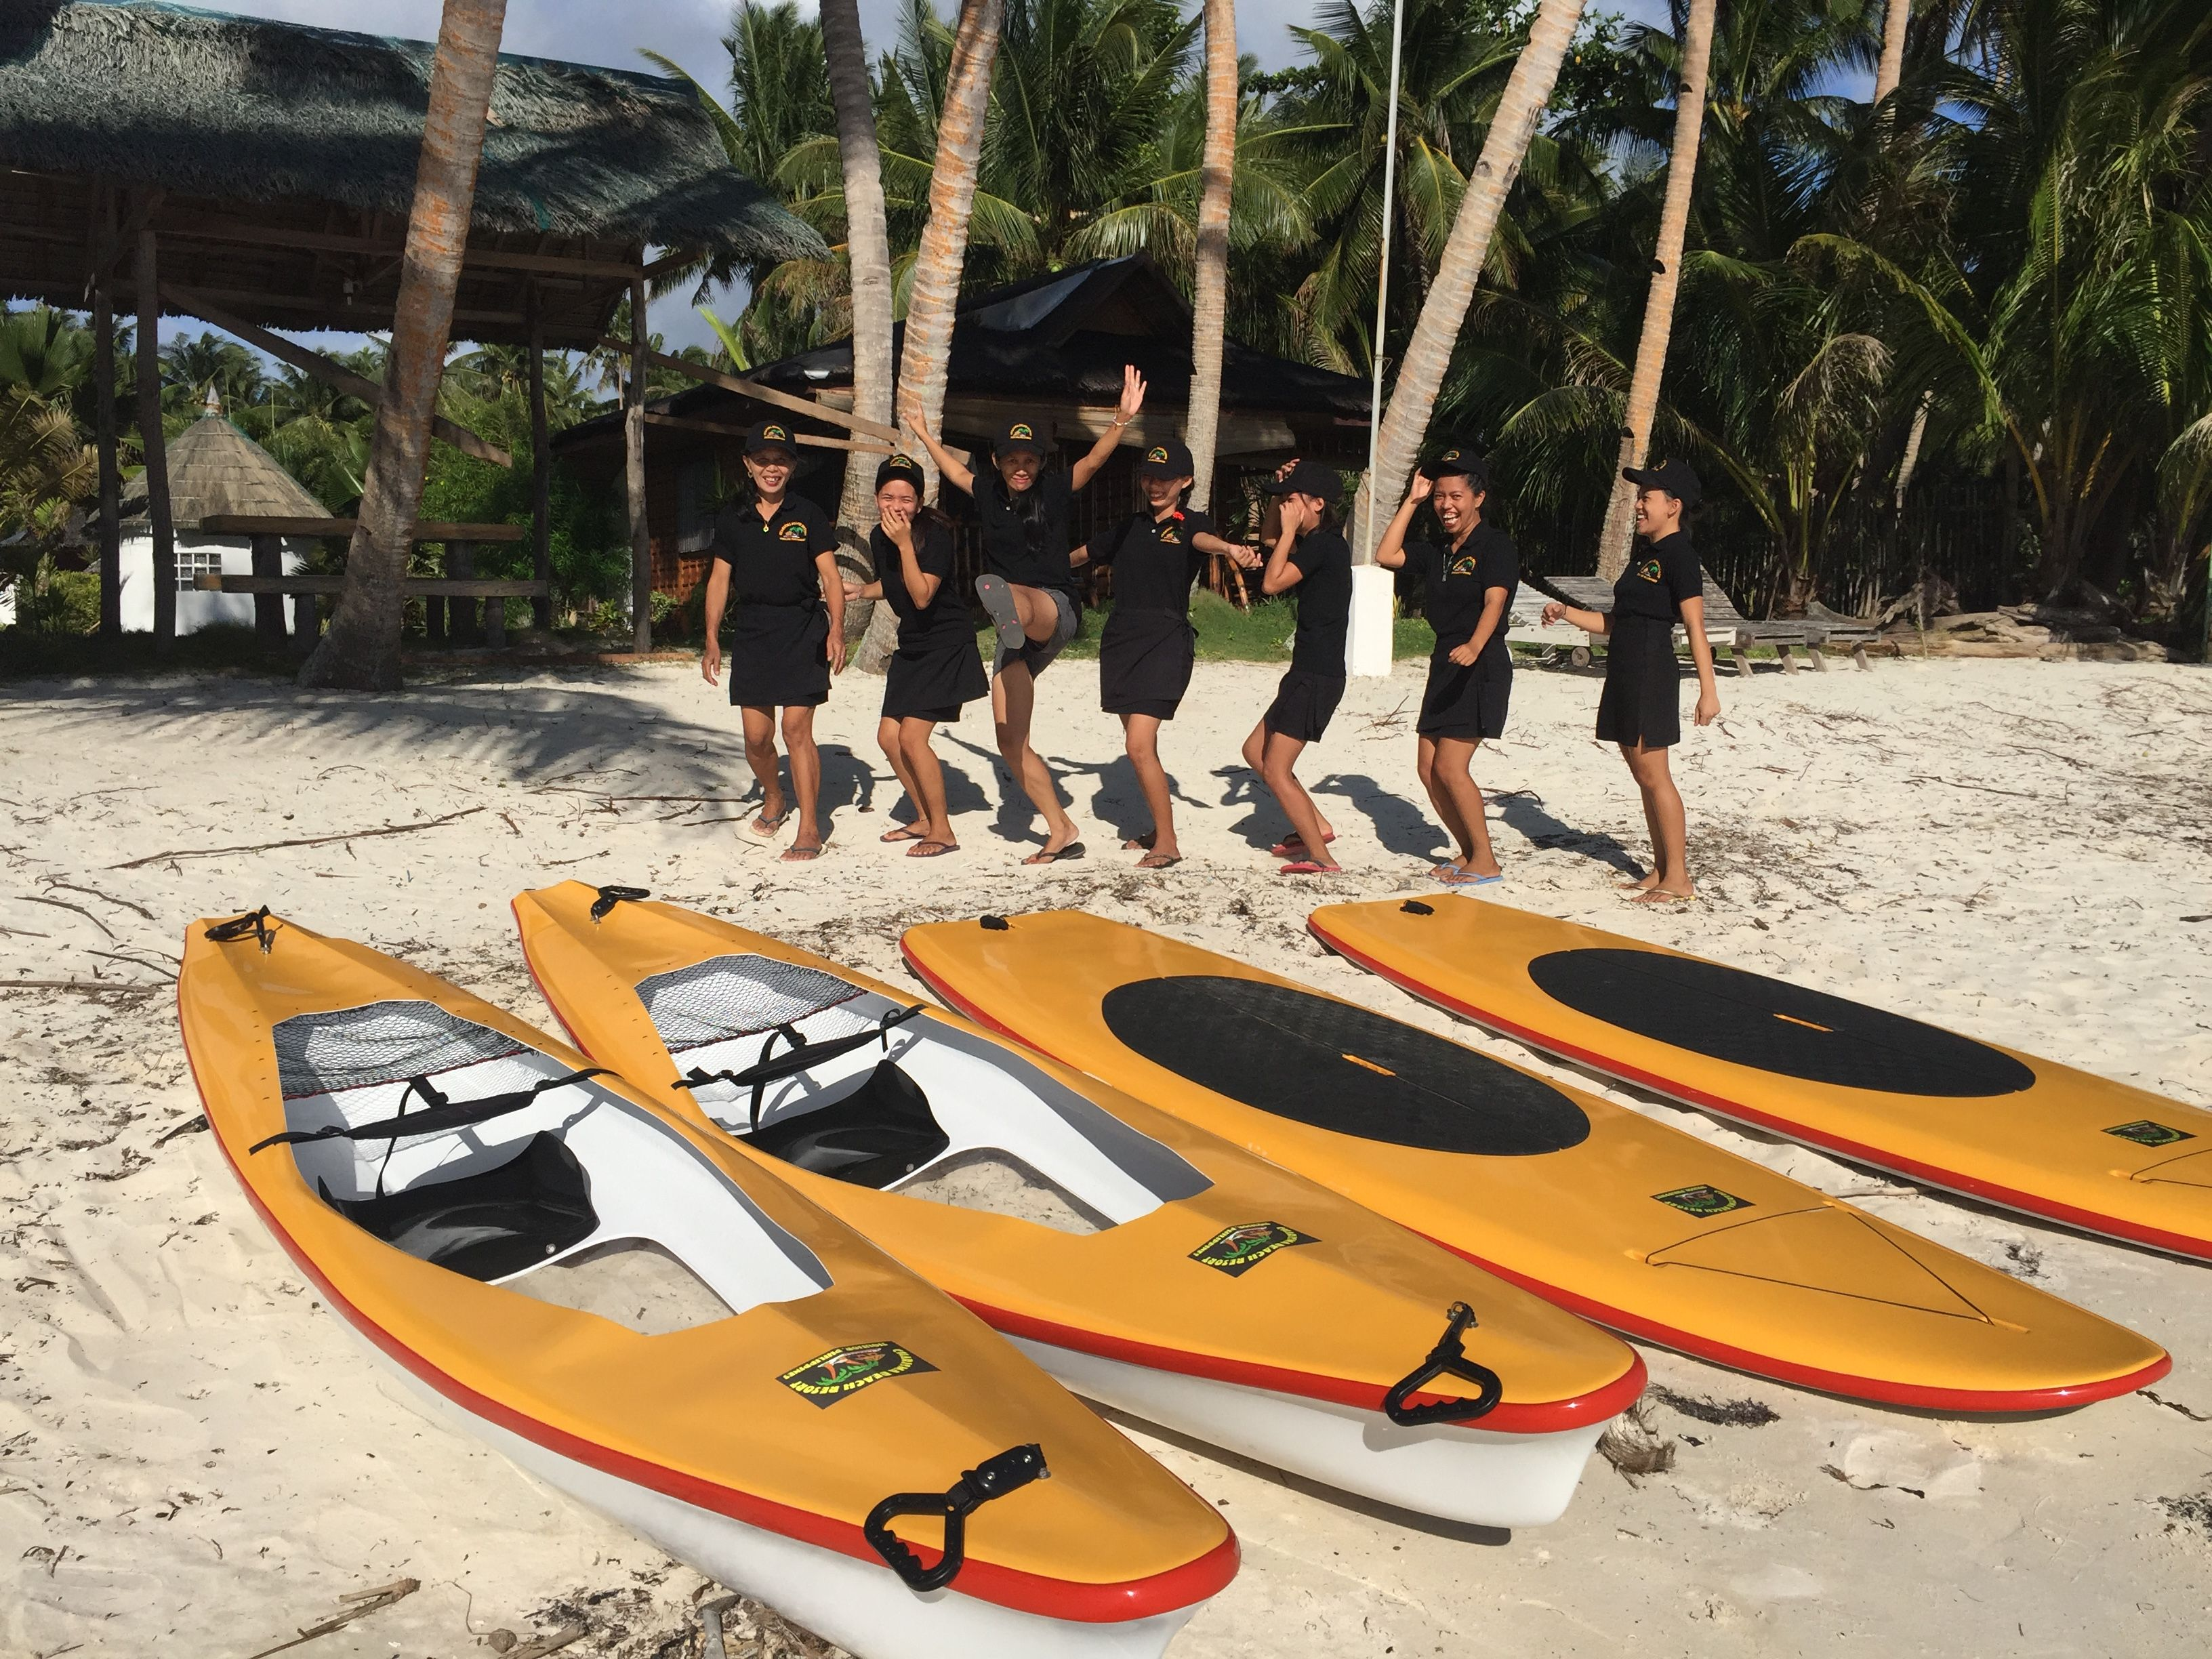 Stand up paddle board ornament - Kayak And Stand Up Paddle Board At Charisma Beach Resort Siquijor Island